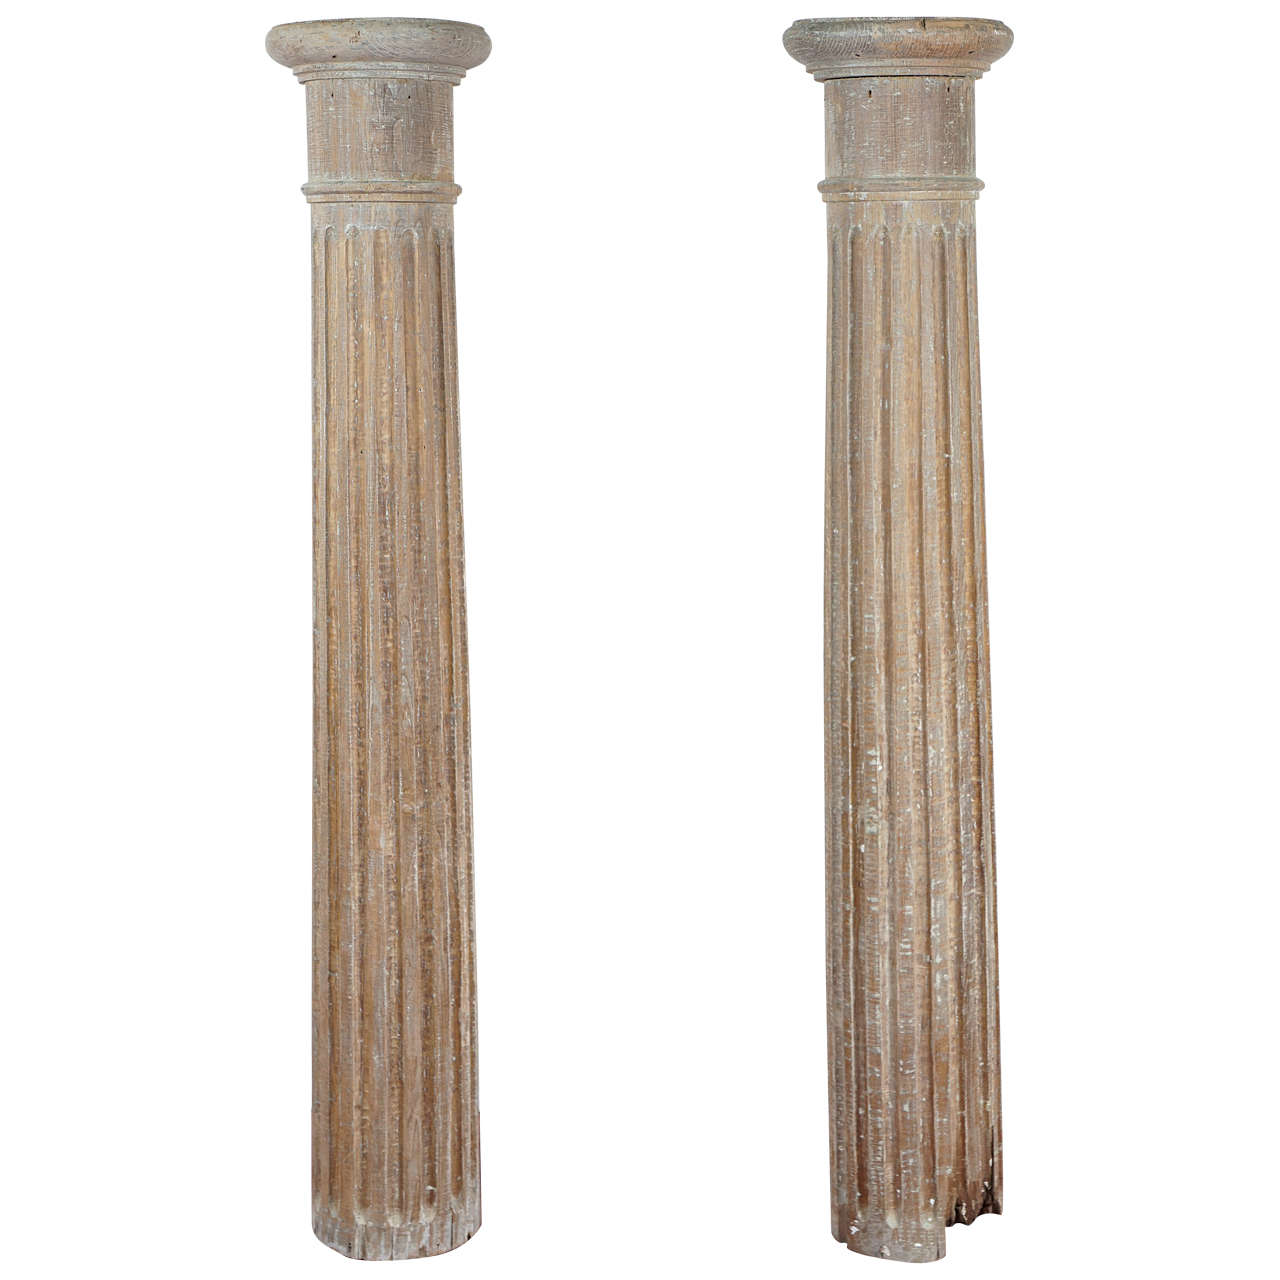 Pair Of Classical Tuscan Wood Columns For Sale At 1stdibs